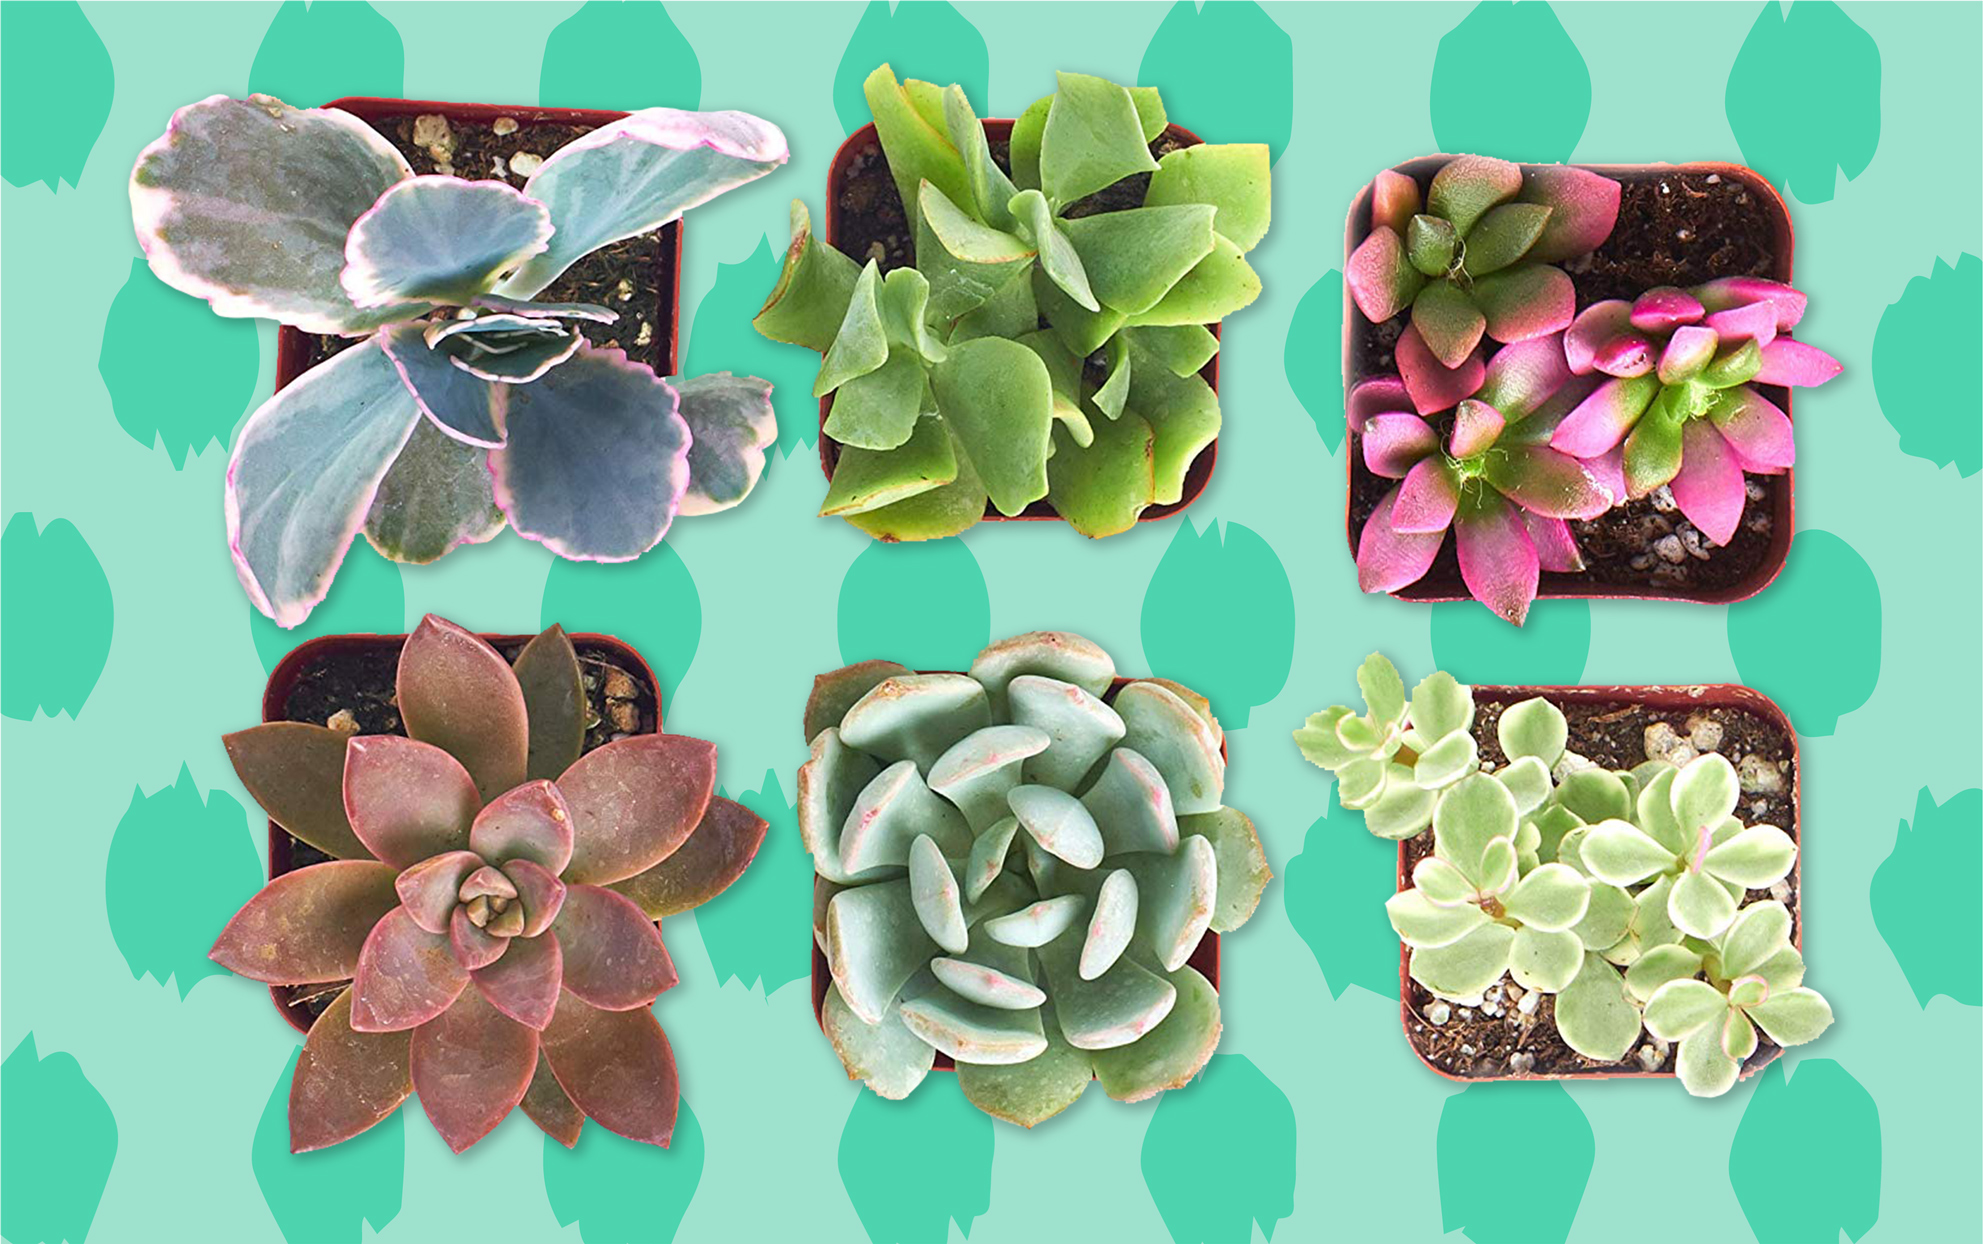 Overhead shot of succulent plants on a green background